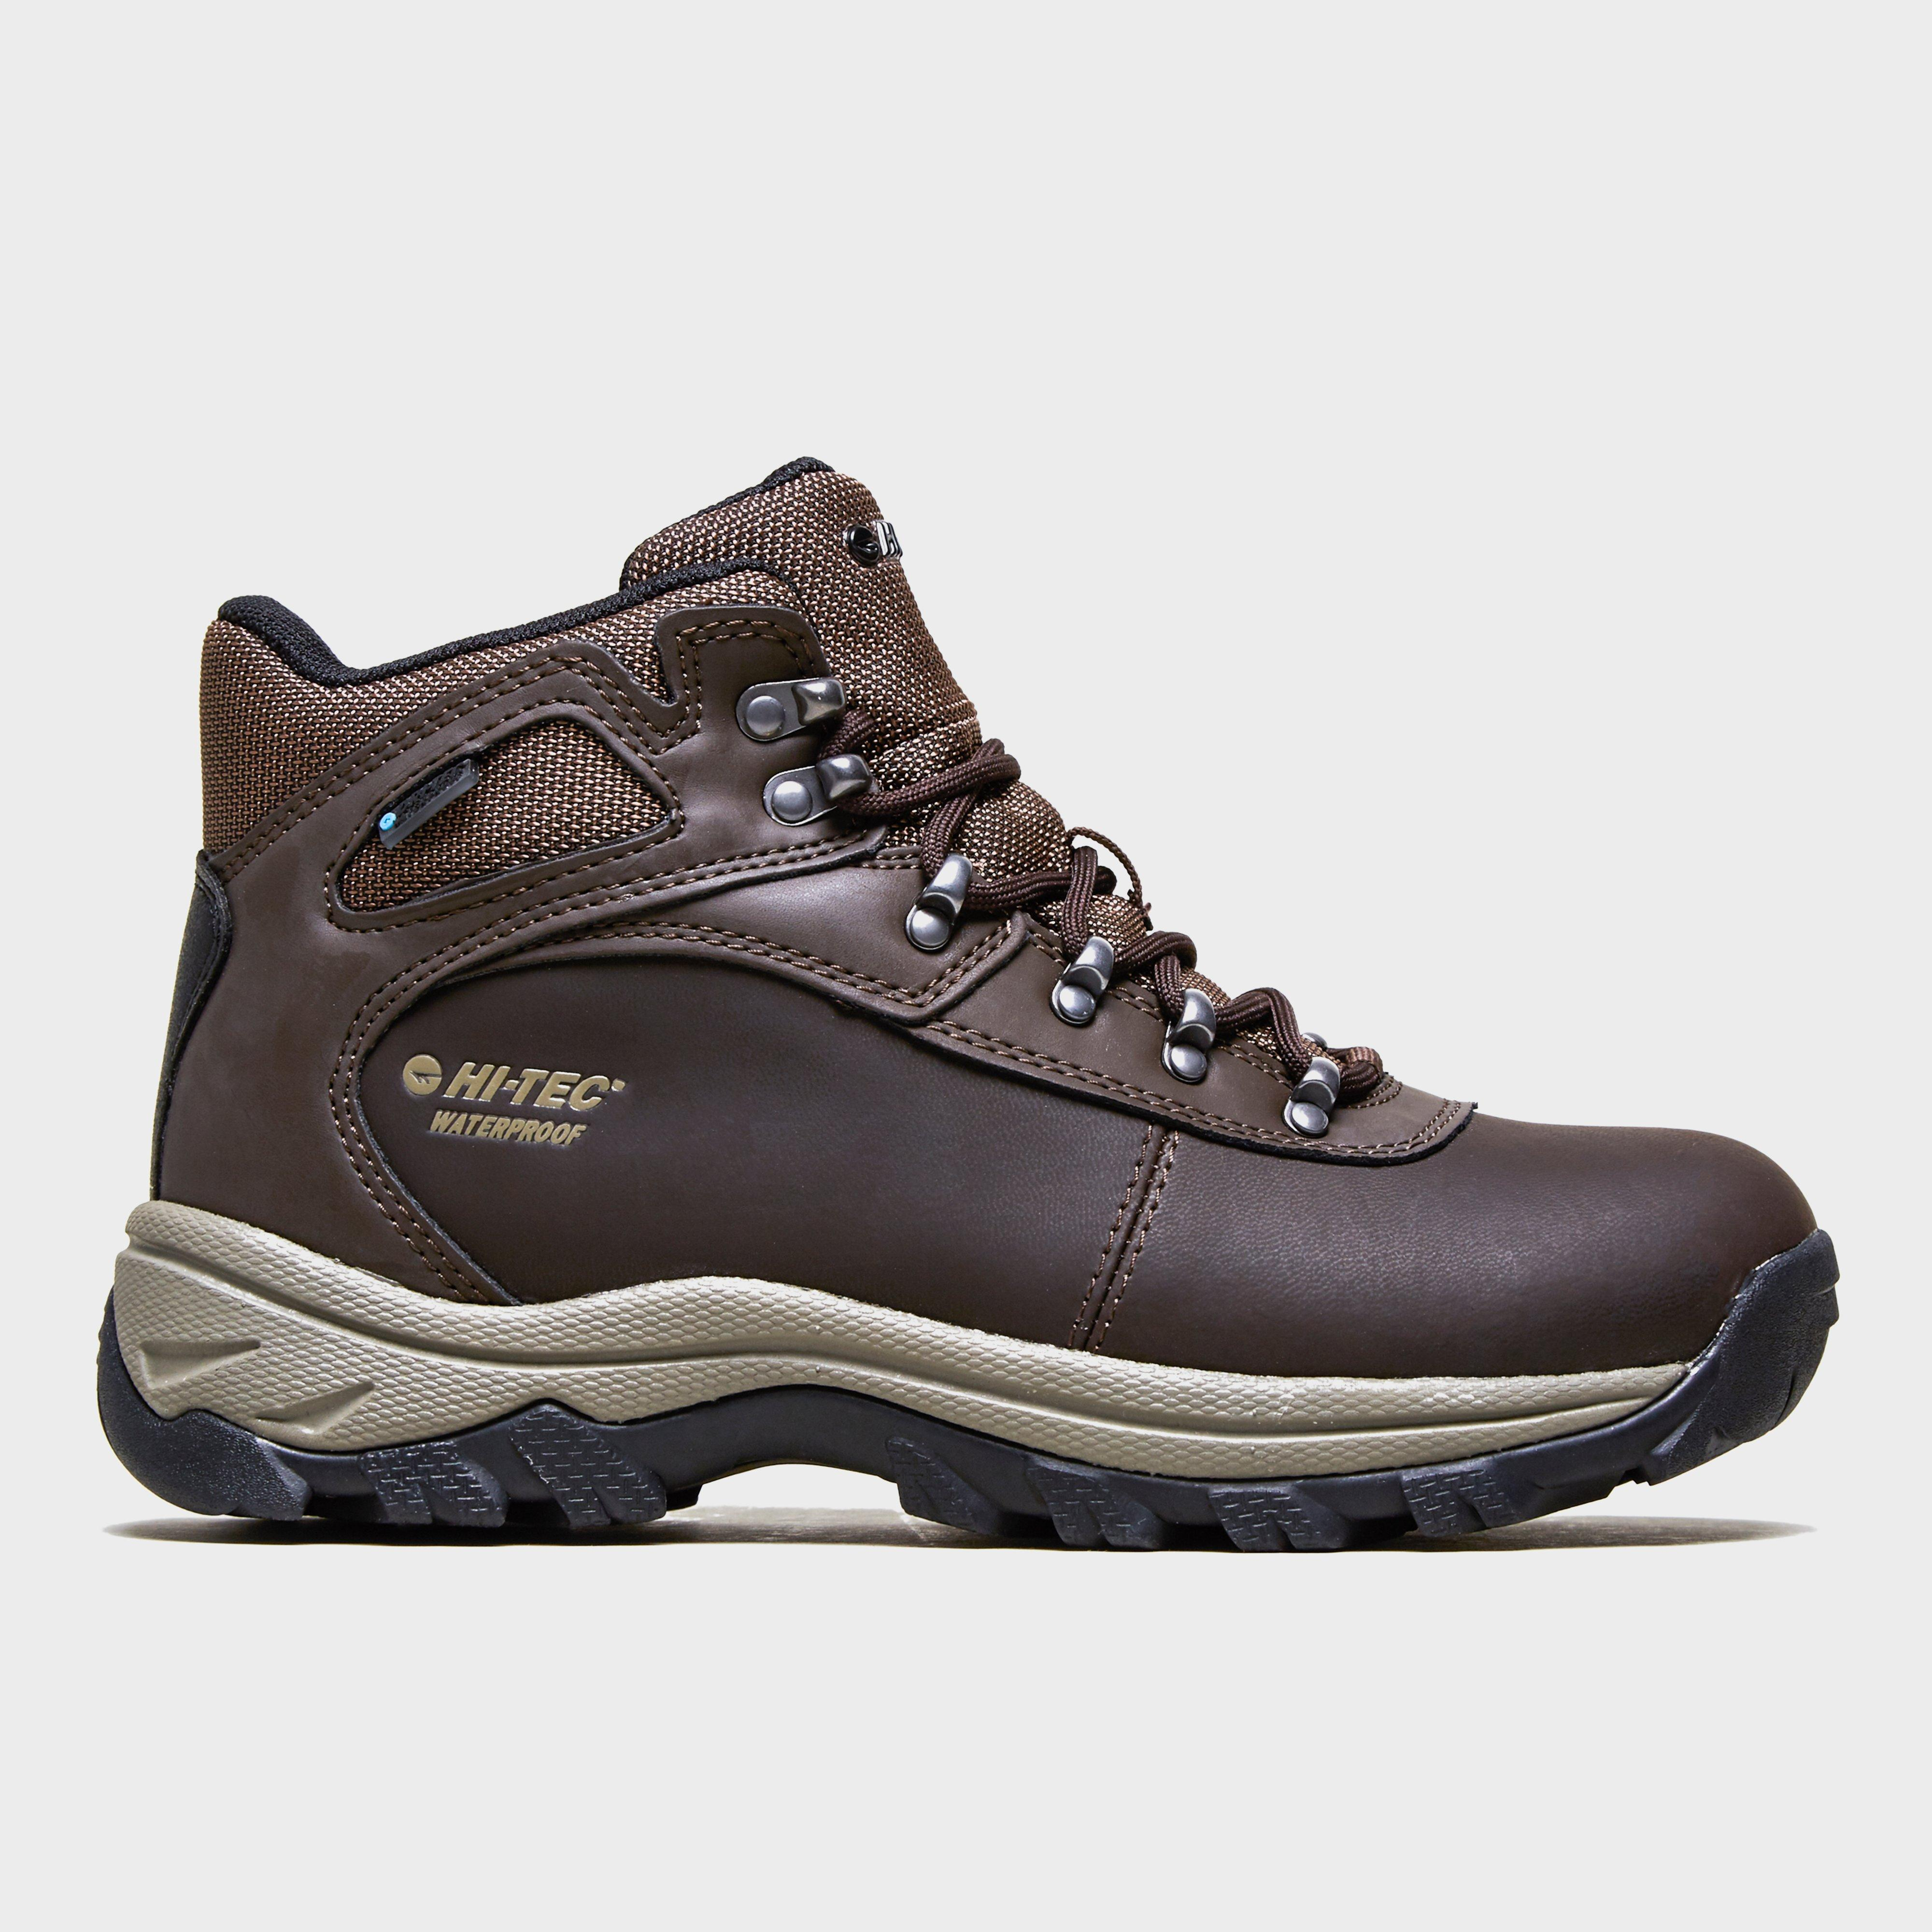 0ce2f561297 Women's Altitude Basecamp Walking Boots